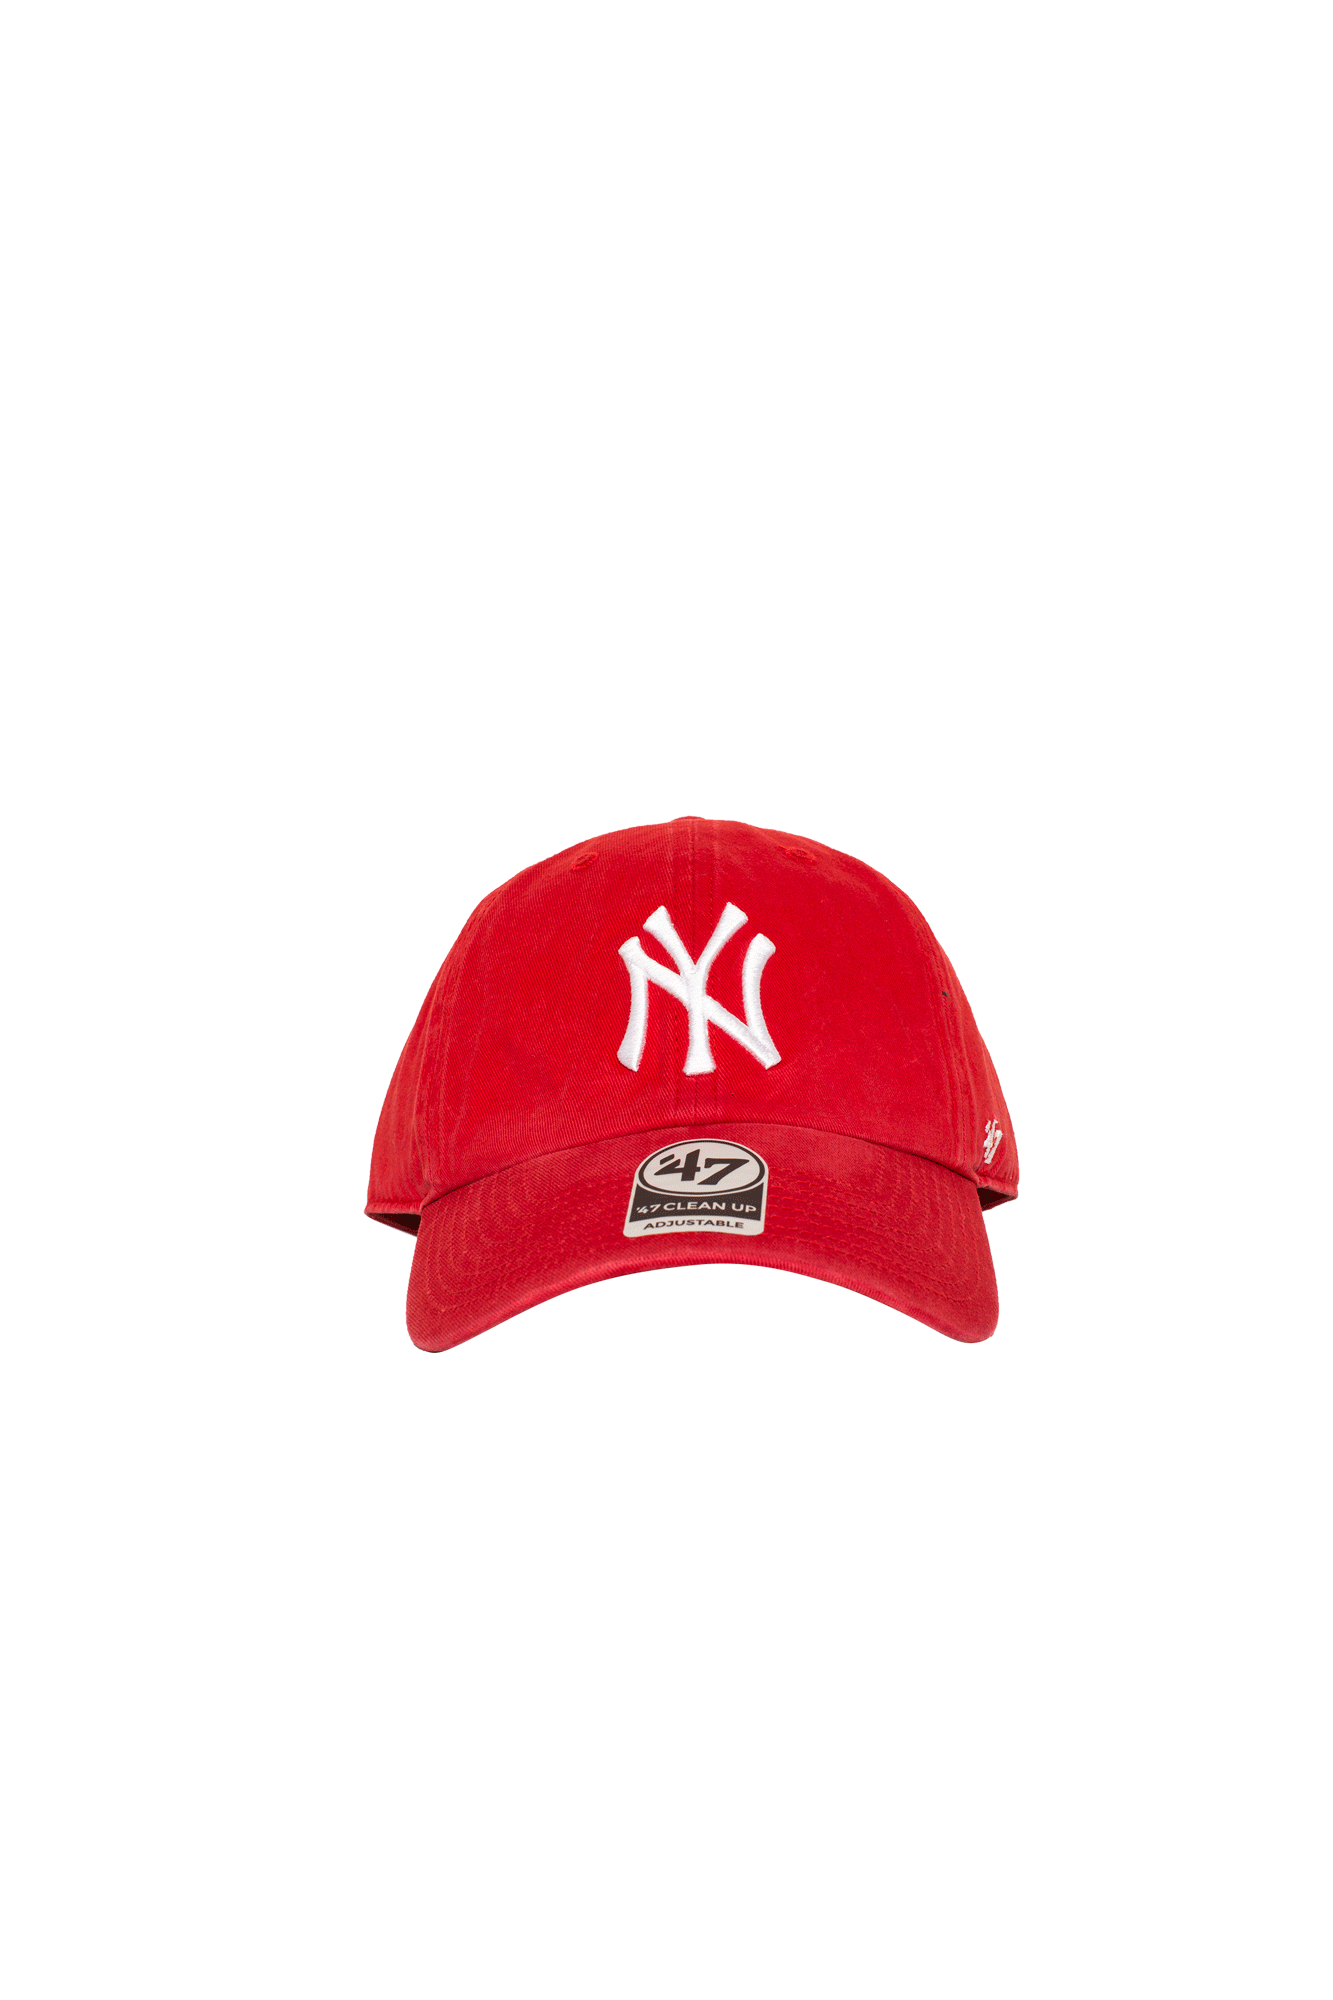 47 Hats Clean Up New York Yankees Red 47-B-RGW17#GWS-#NL-RDC#OS - One Block Down